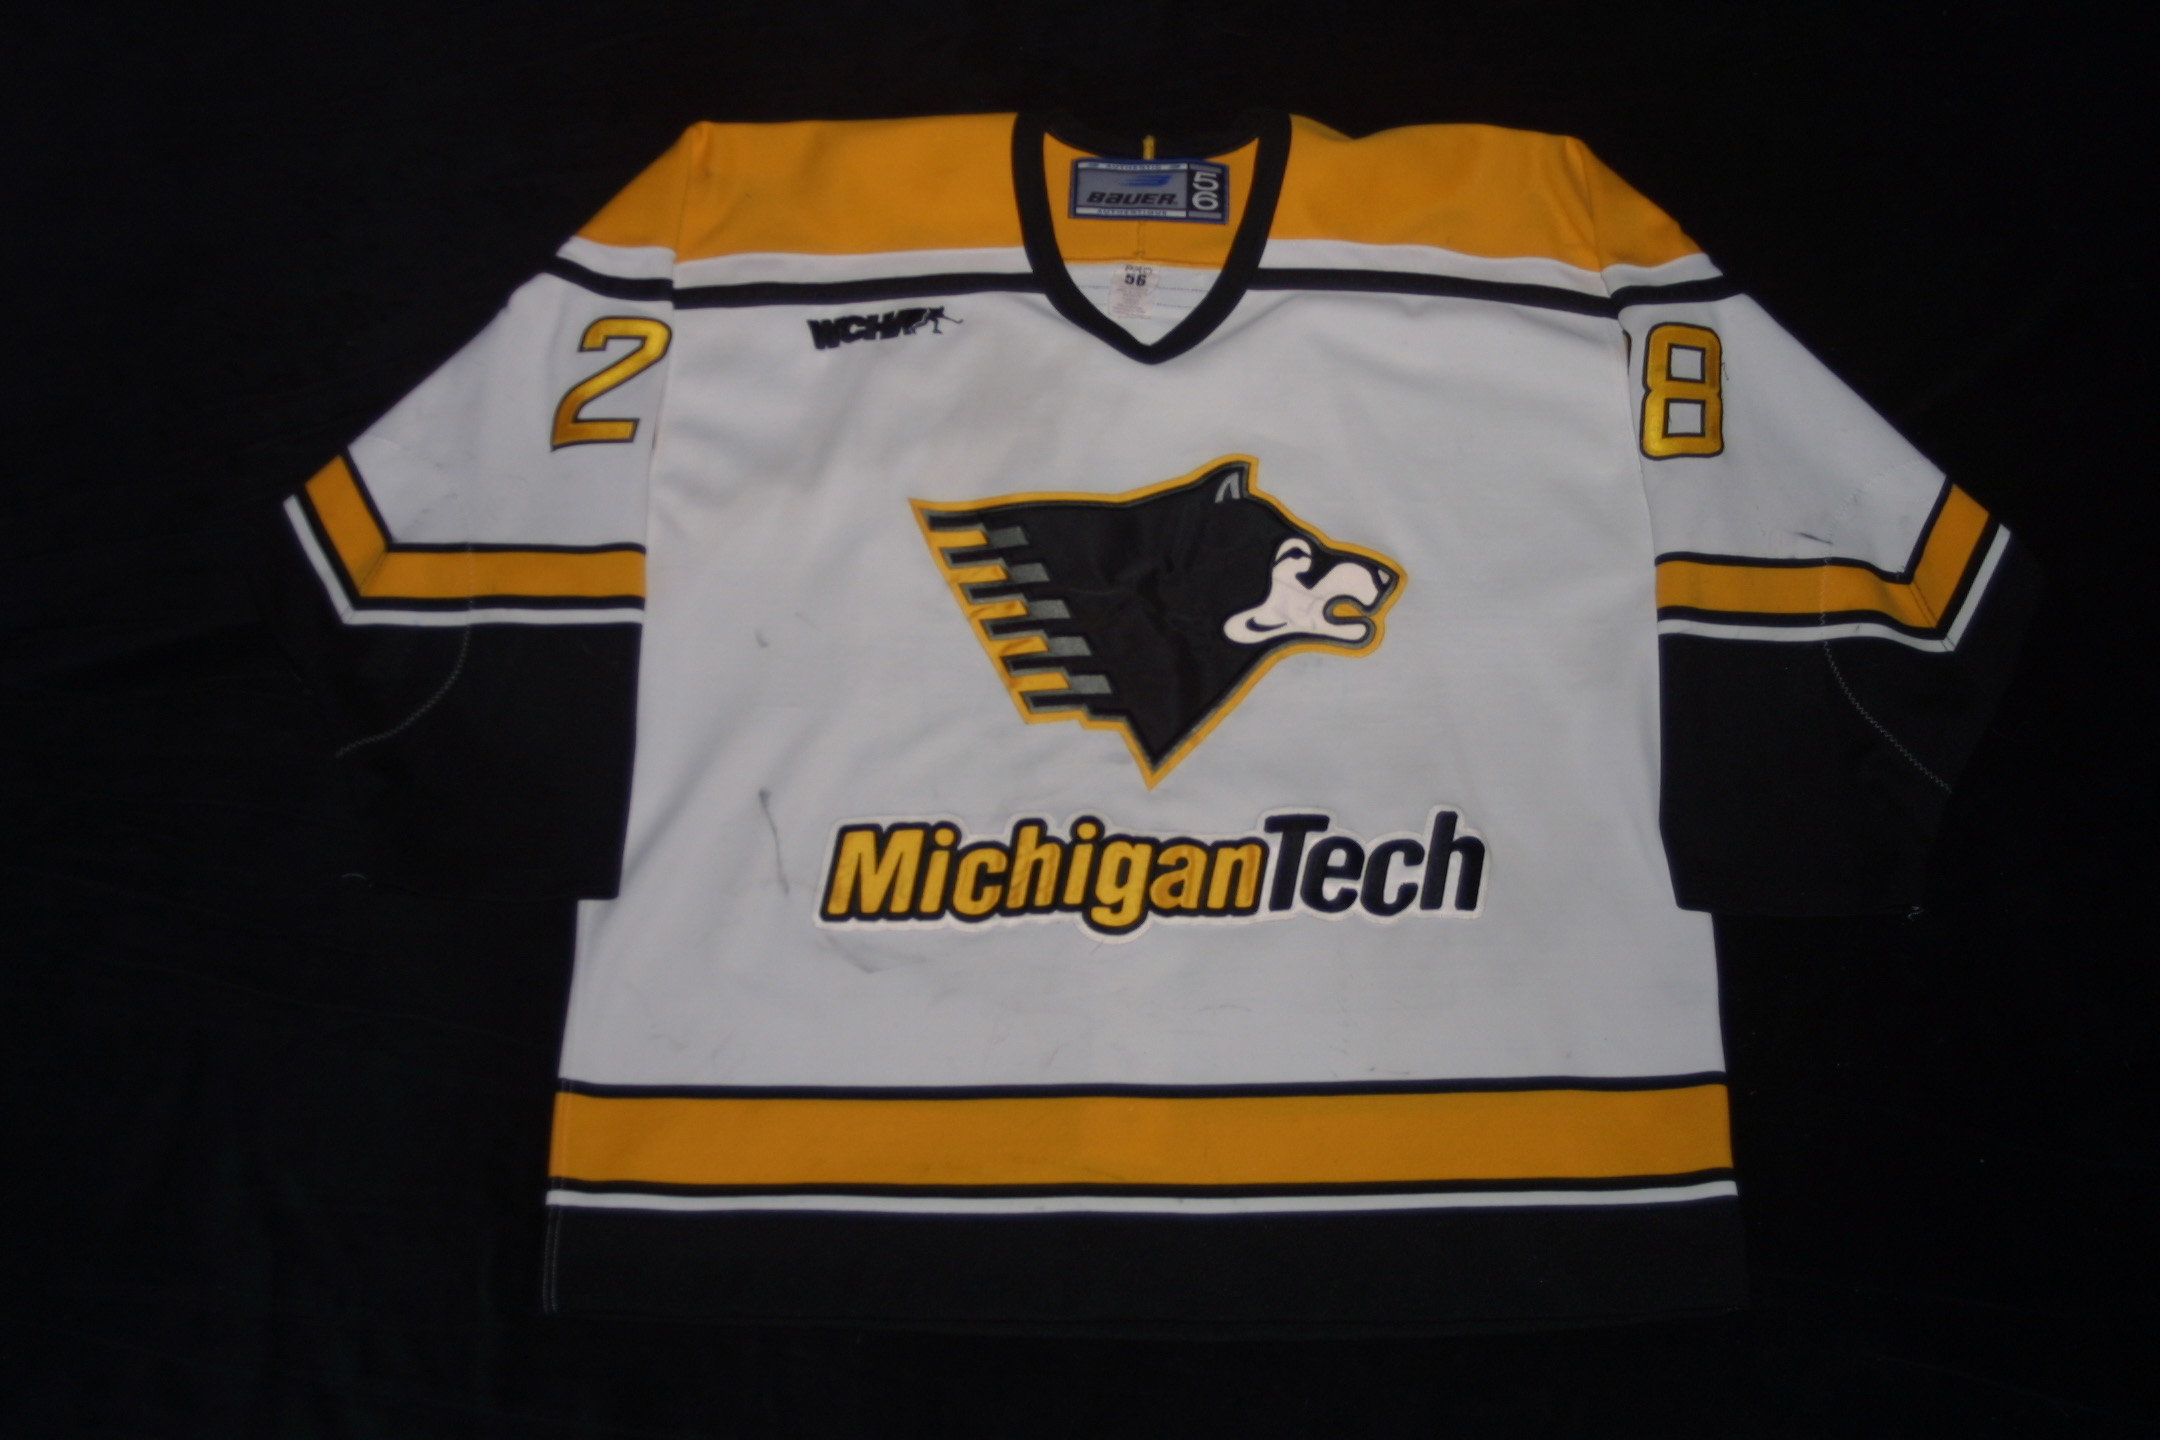 Michigan Tech Game Used Equipment at Johnson s Jerseys 8cc8e47ef50